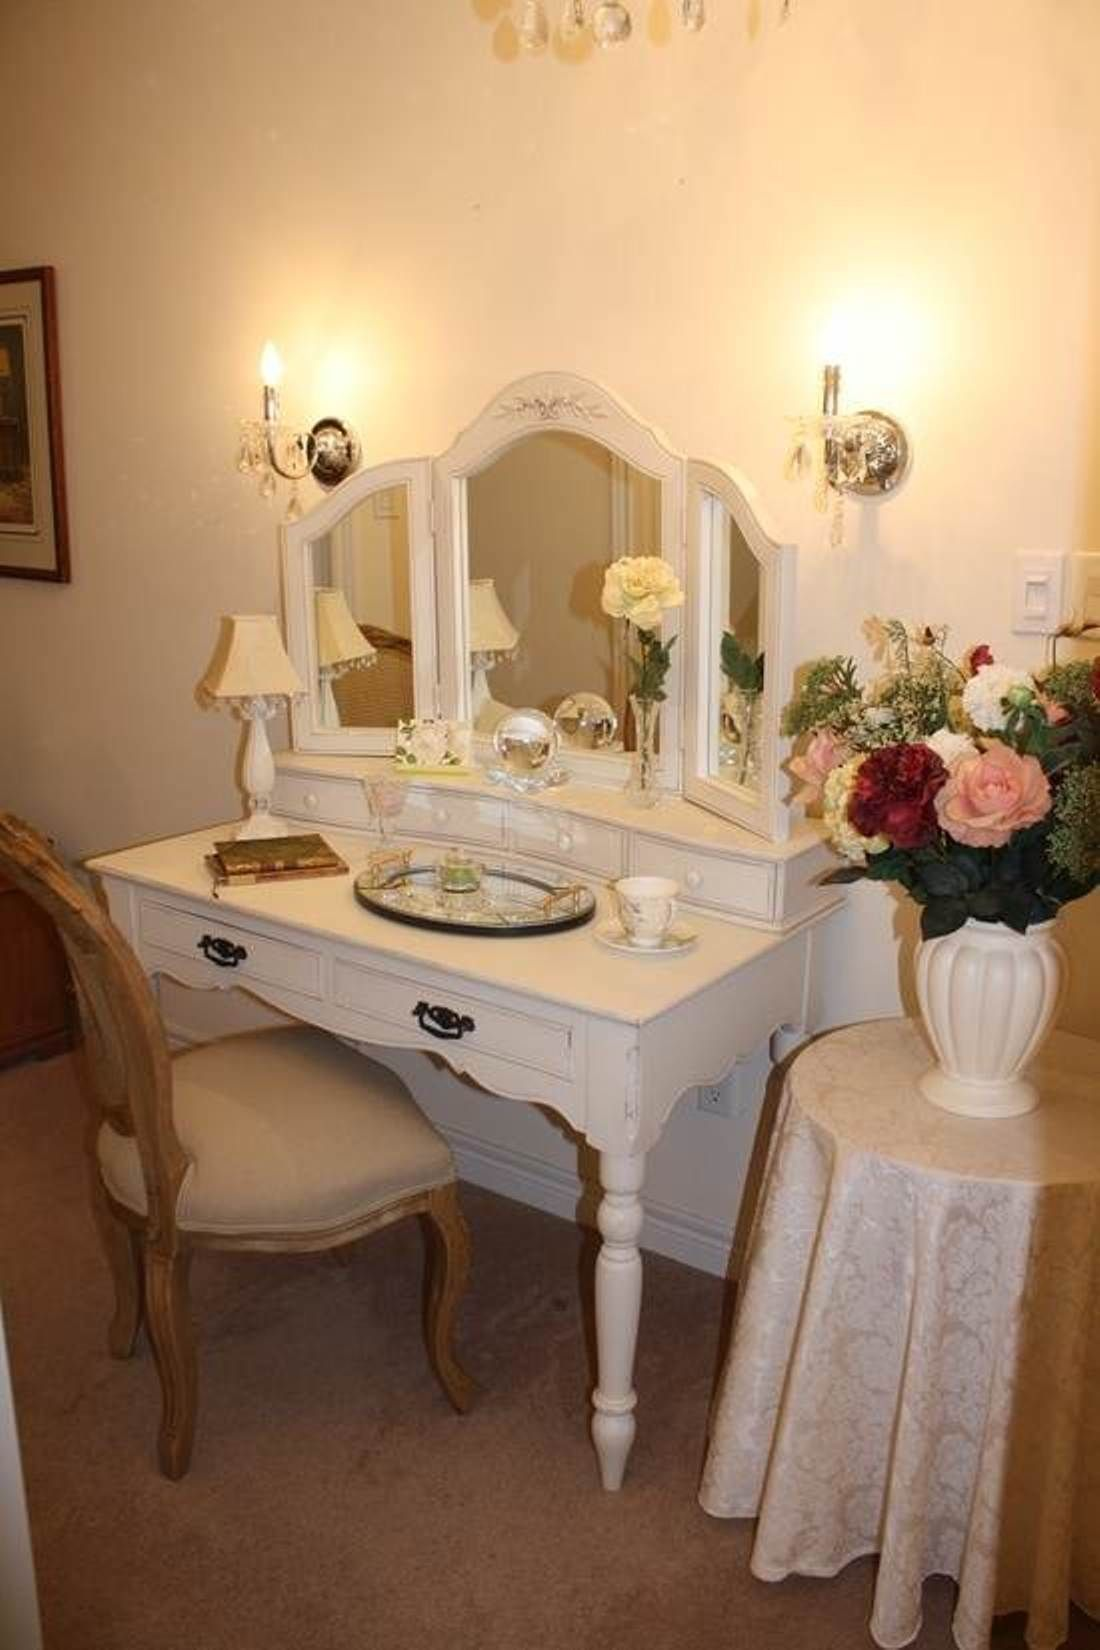 Simple White Small Wooden Antique Vanity Table Design With Elegant Chair On Brown Floor As Well